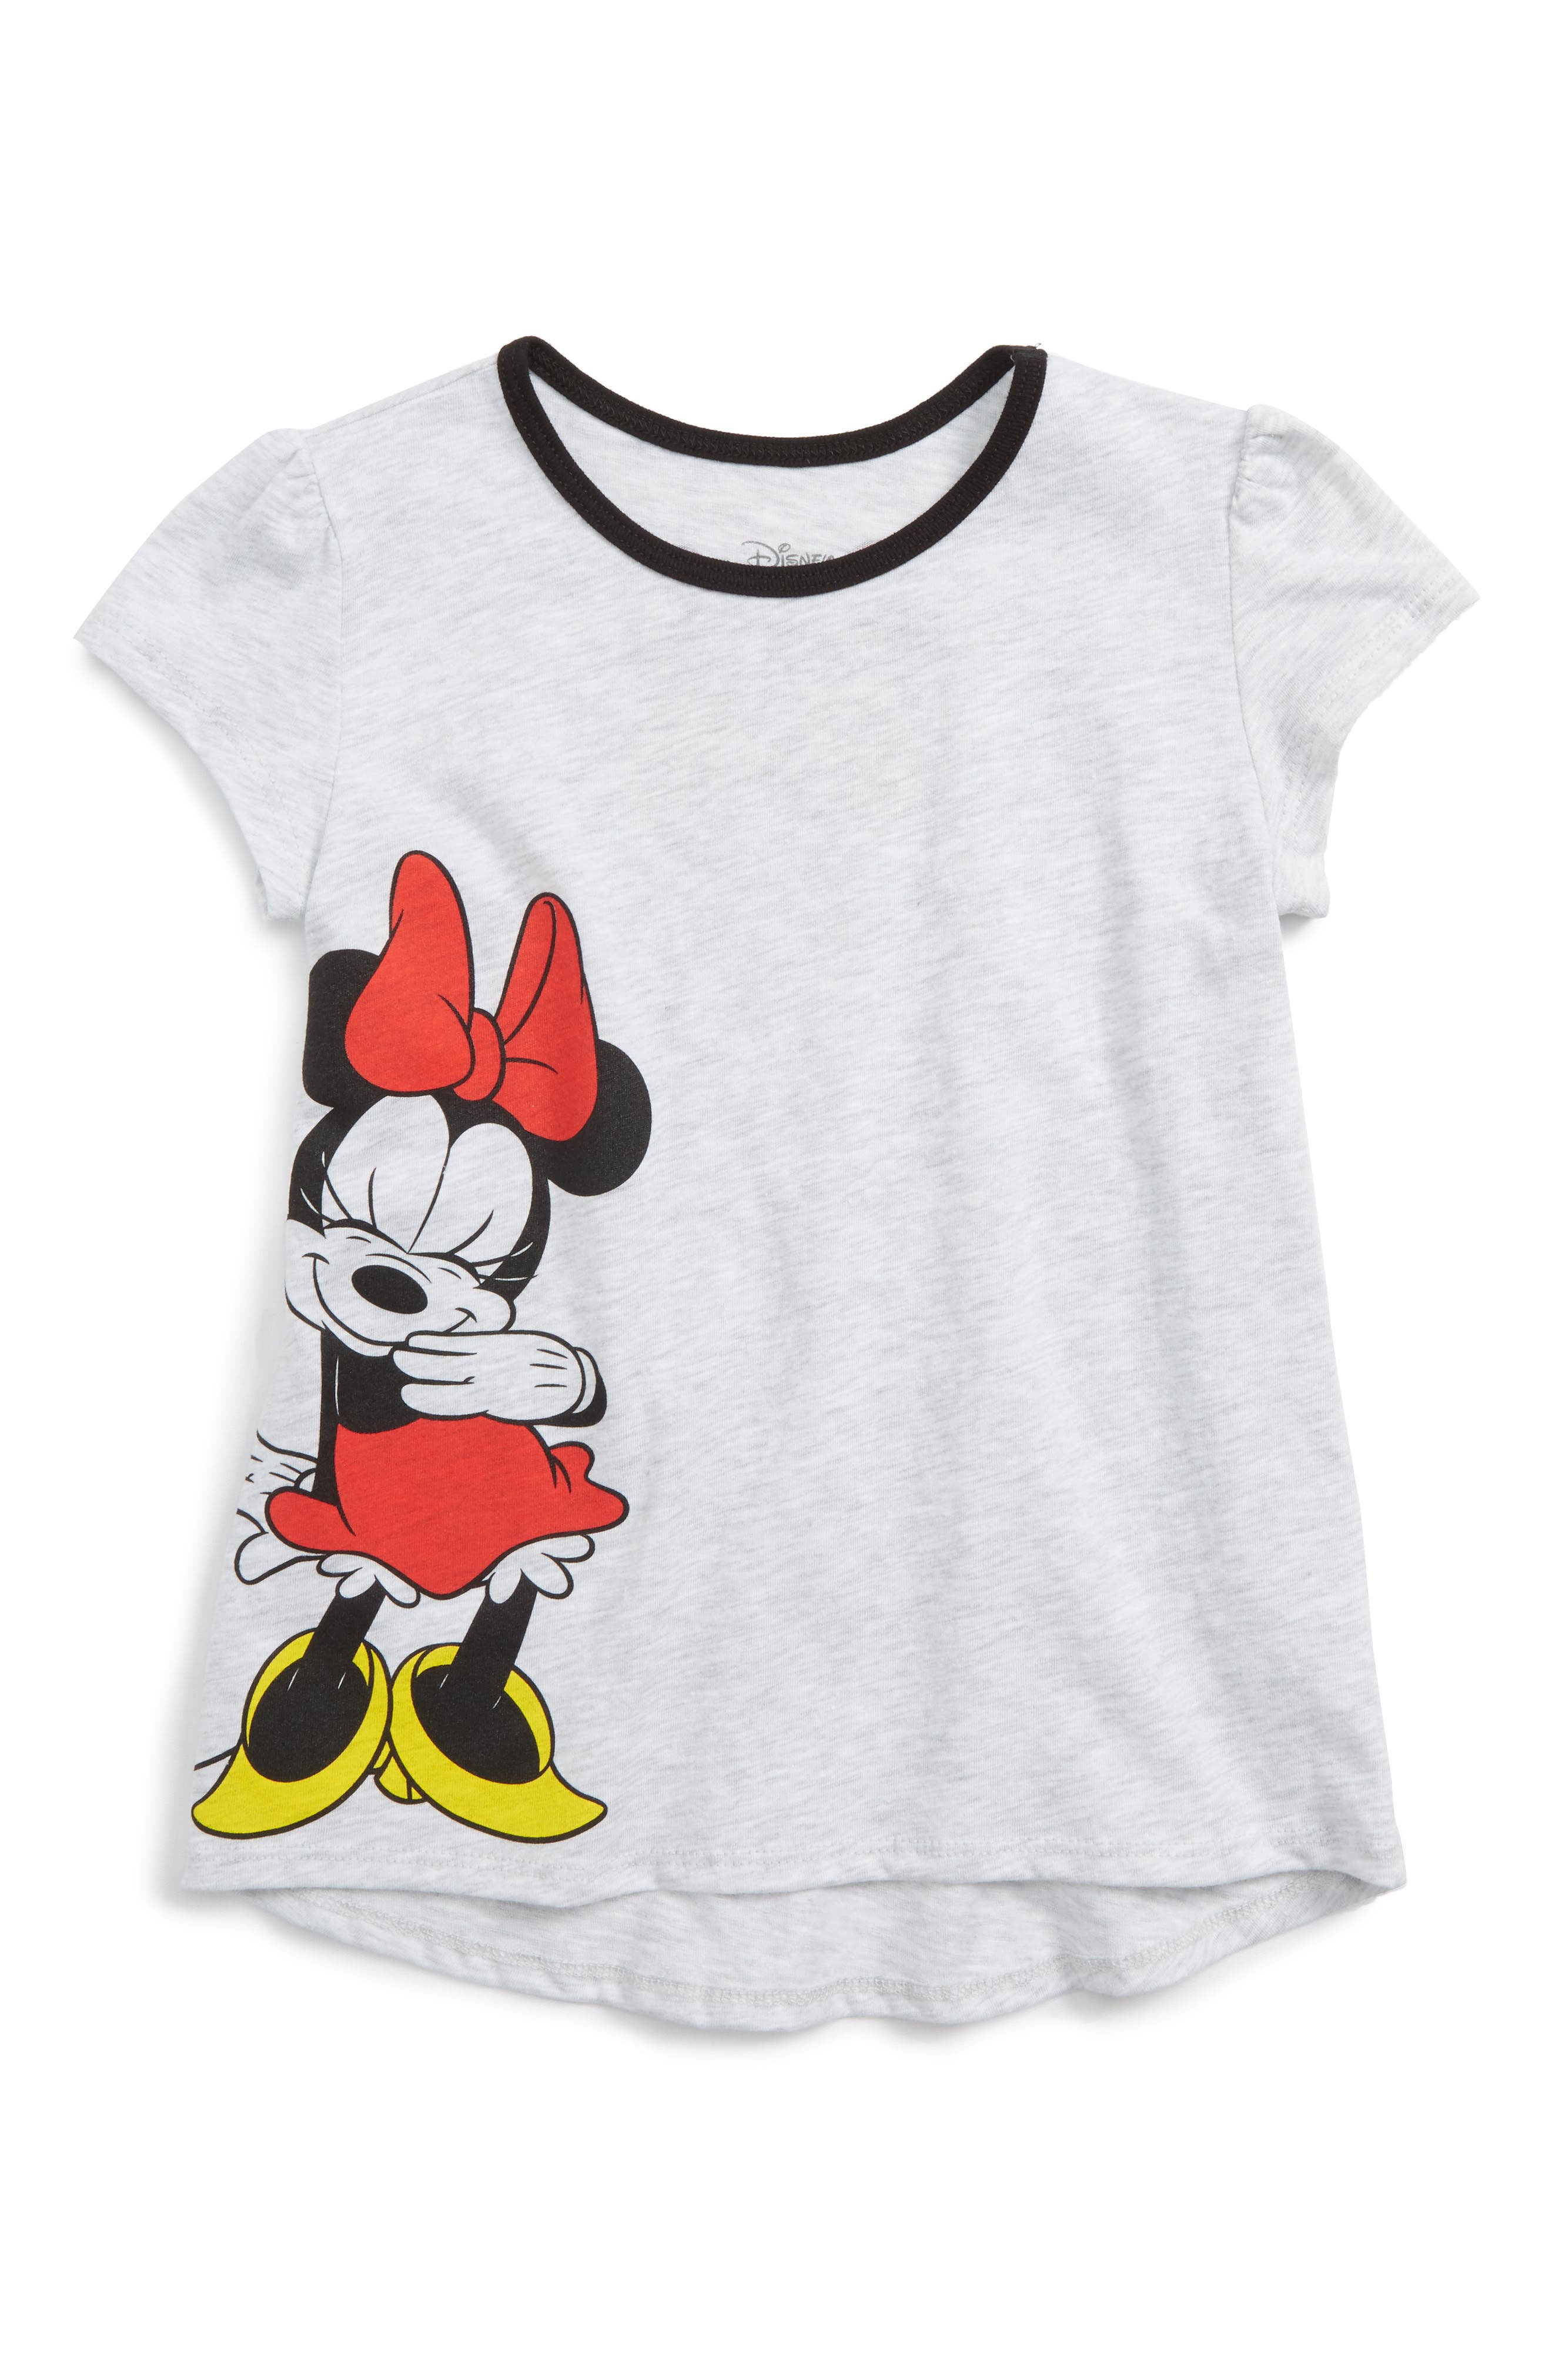 Alternate Image 1 Selected - Mighty Fine Disney - Minnie Mouse Graphic Tee (Toddler Girls, Little Girls & Big Girls)